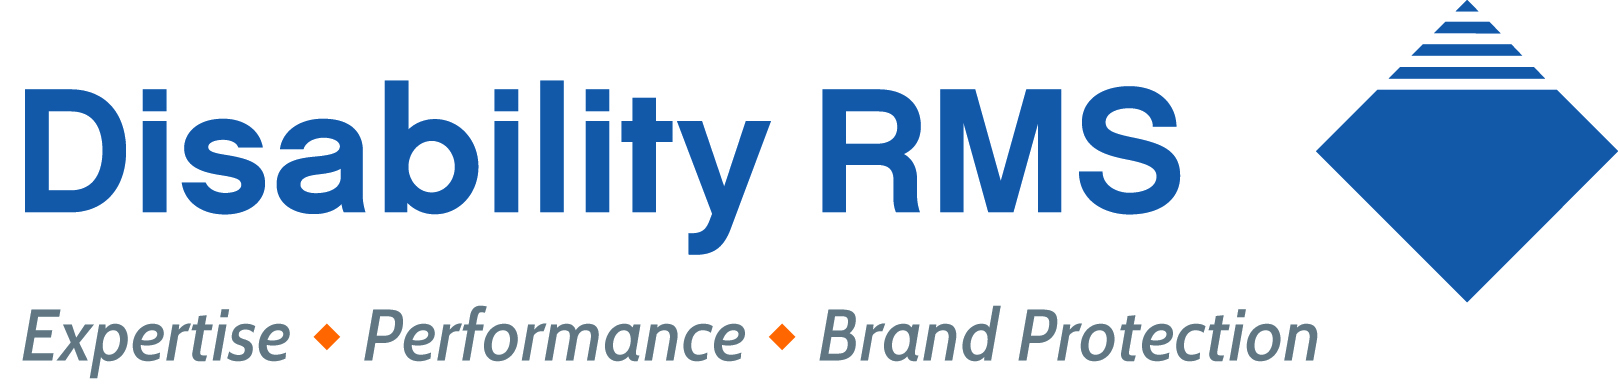 Disability RMS